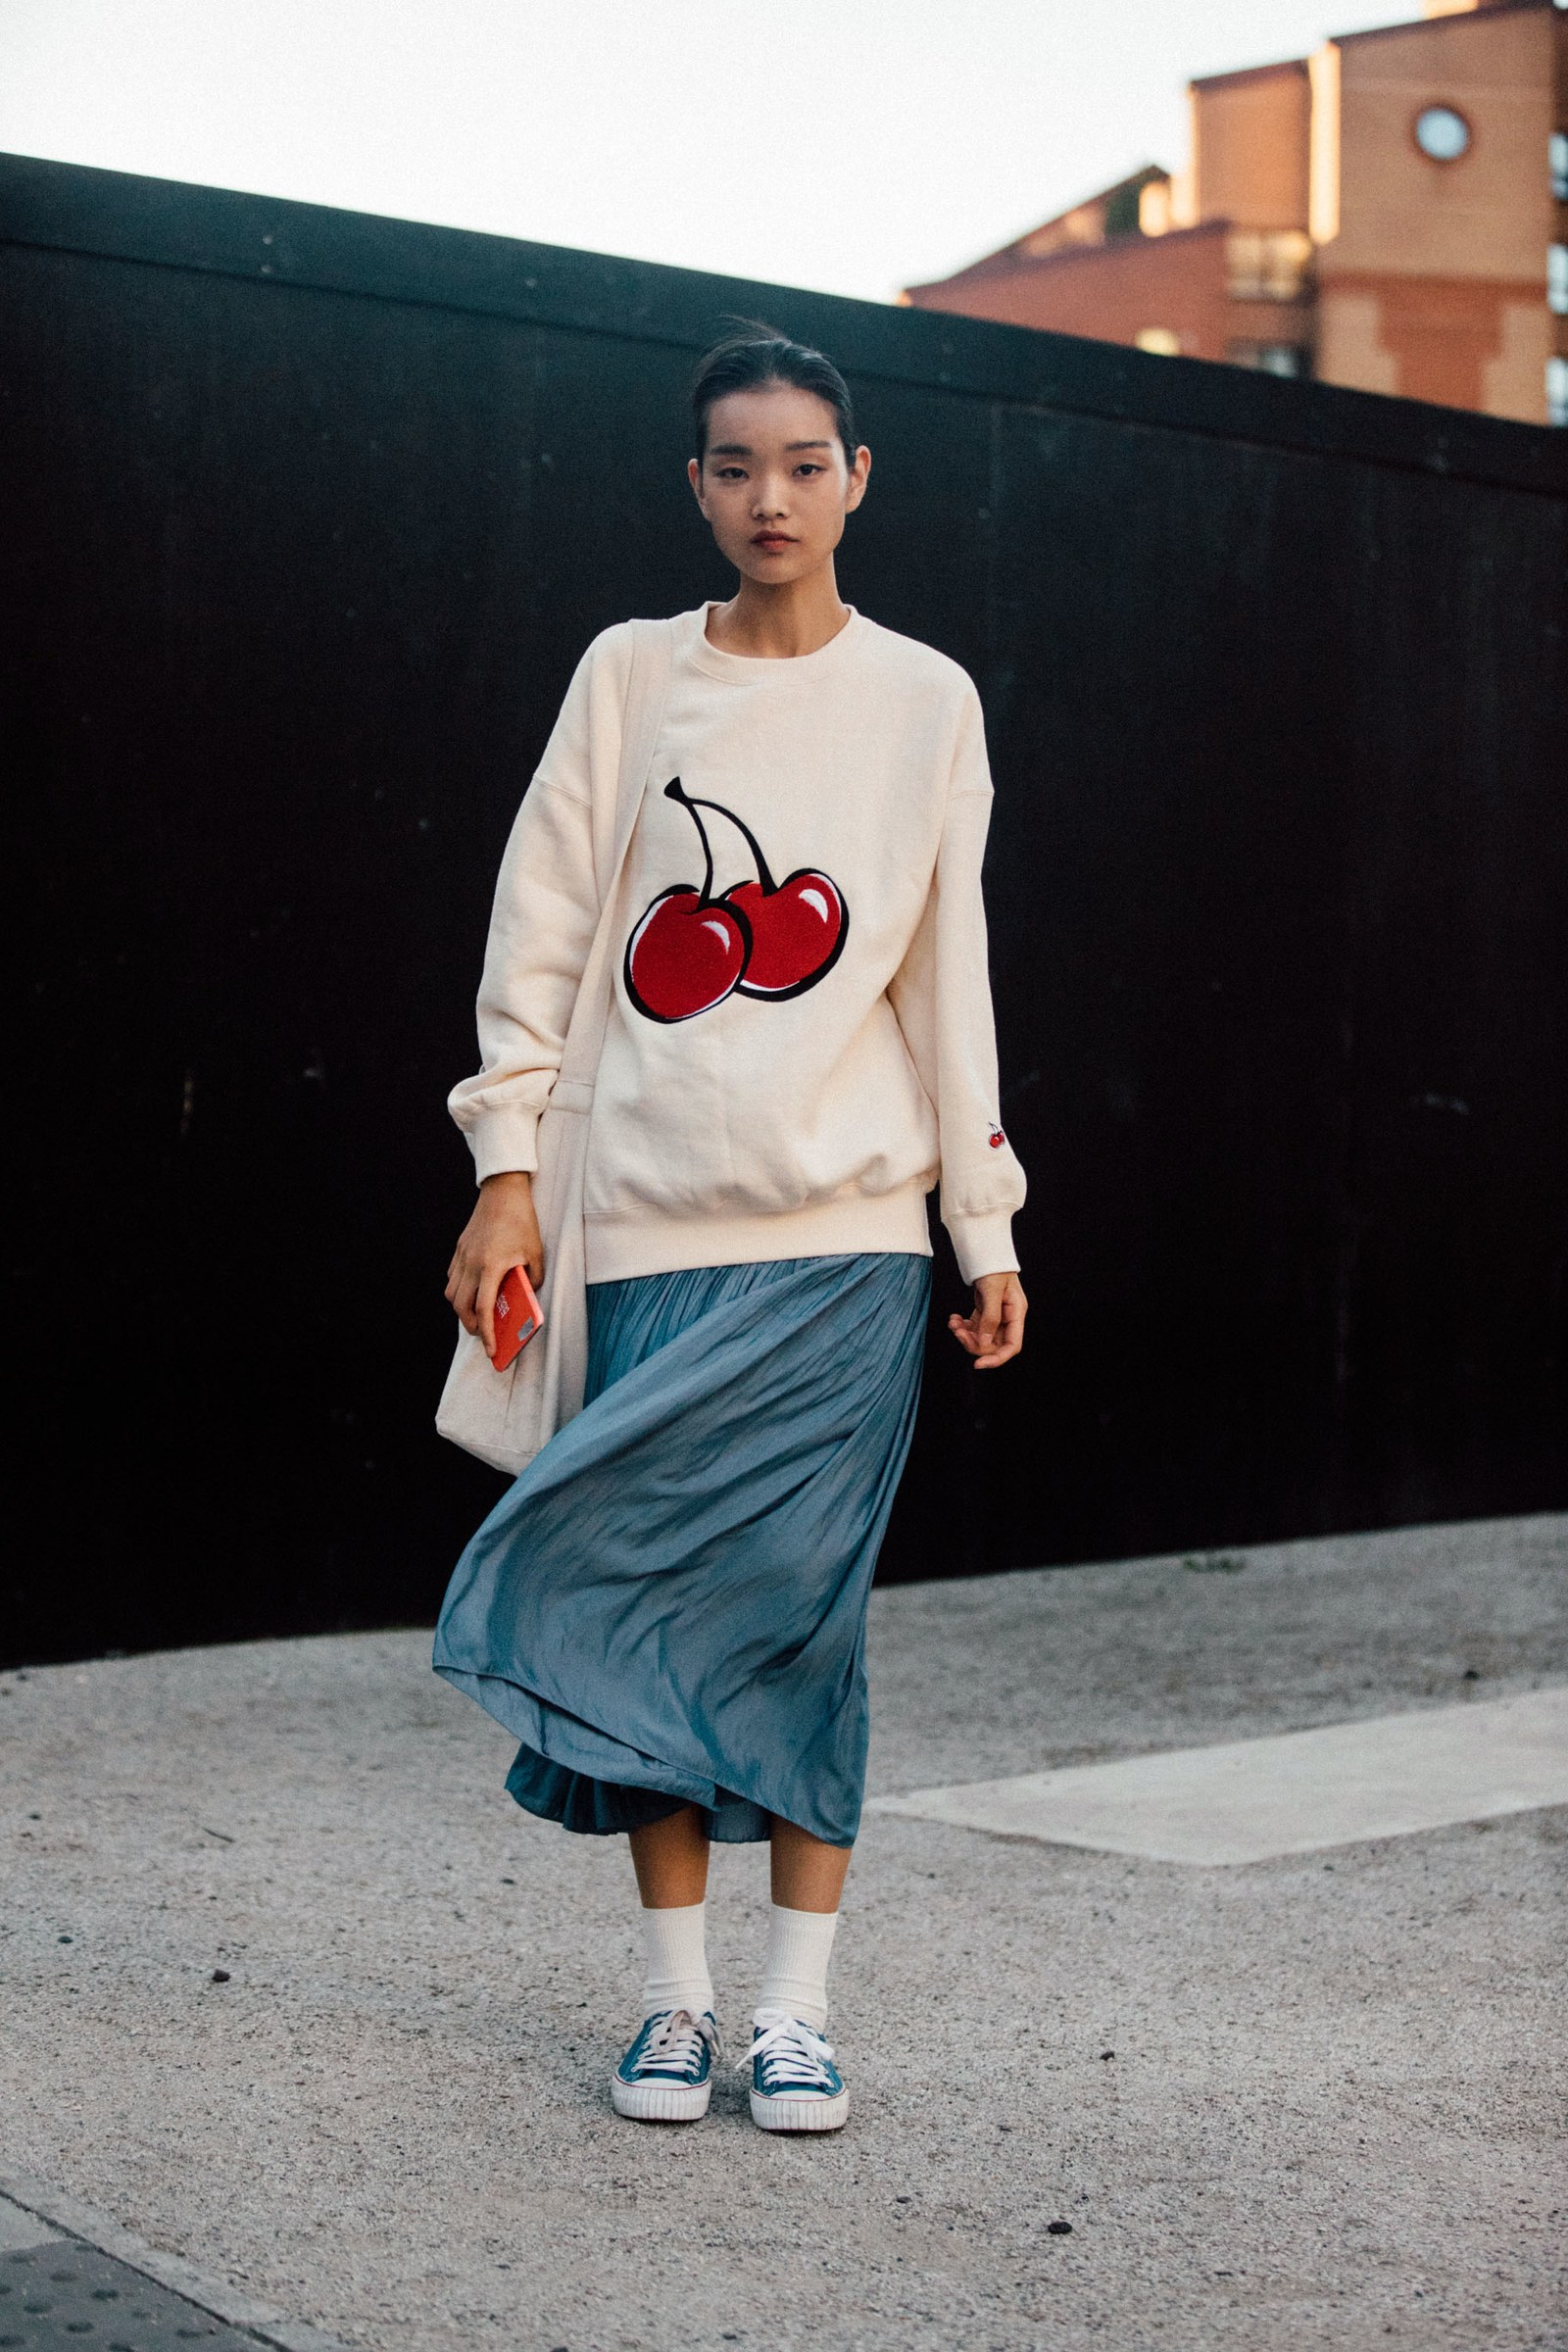 pA model wearing a cherry sweatshirt...p